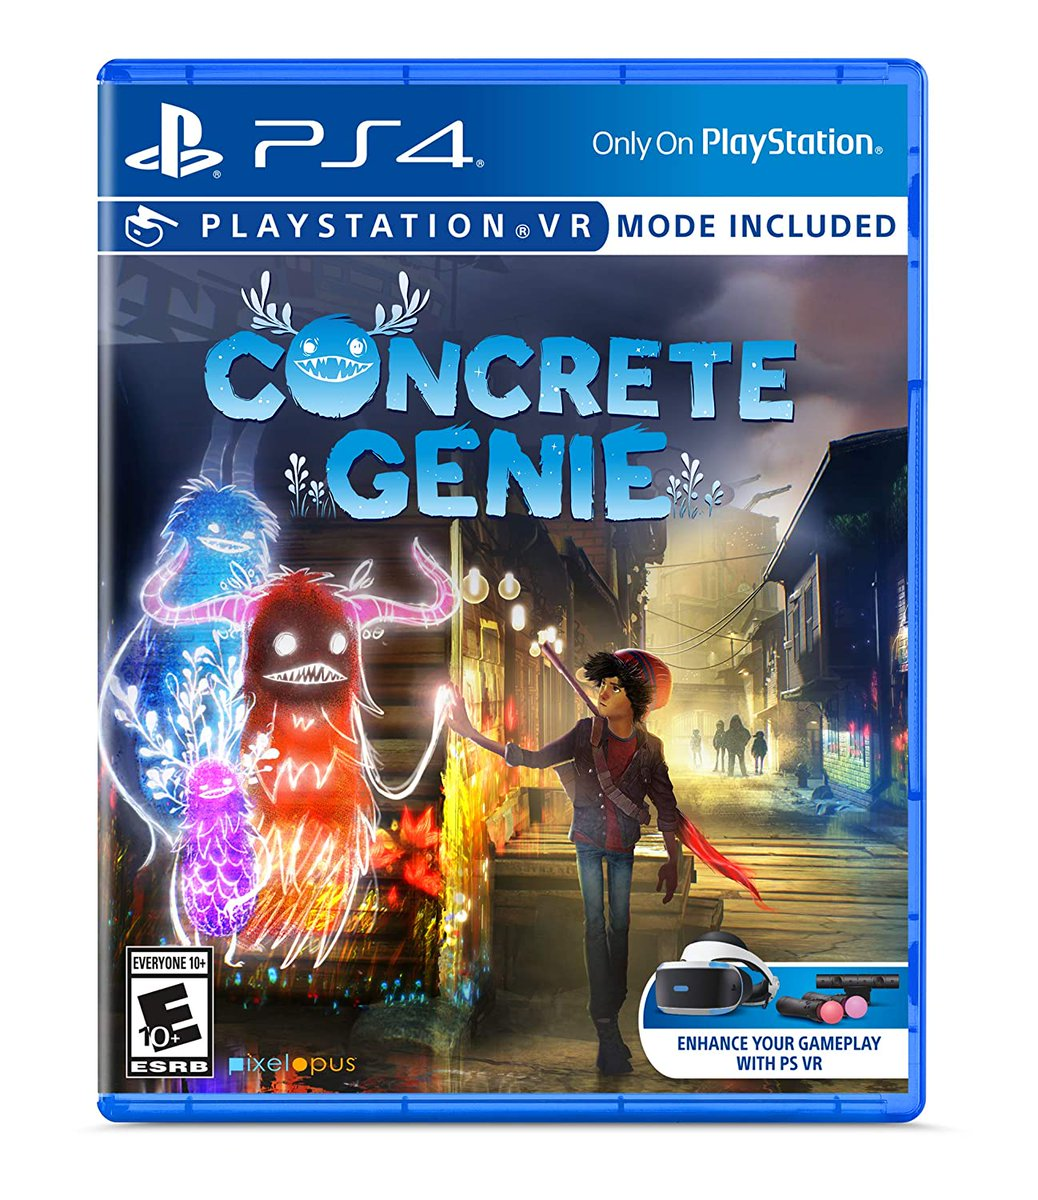 Concrete Genie (PS4) is $17.67 on Amazon Link0 $19.99 Best Buy Link1